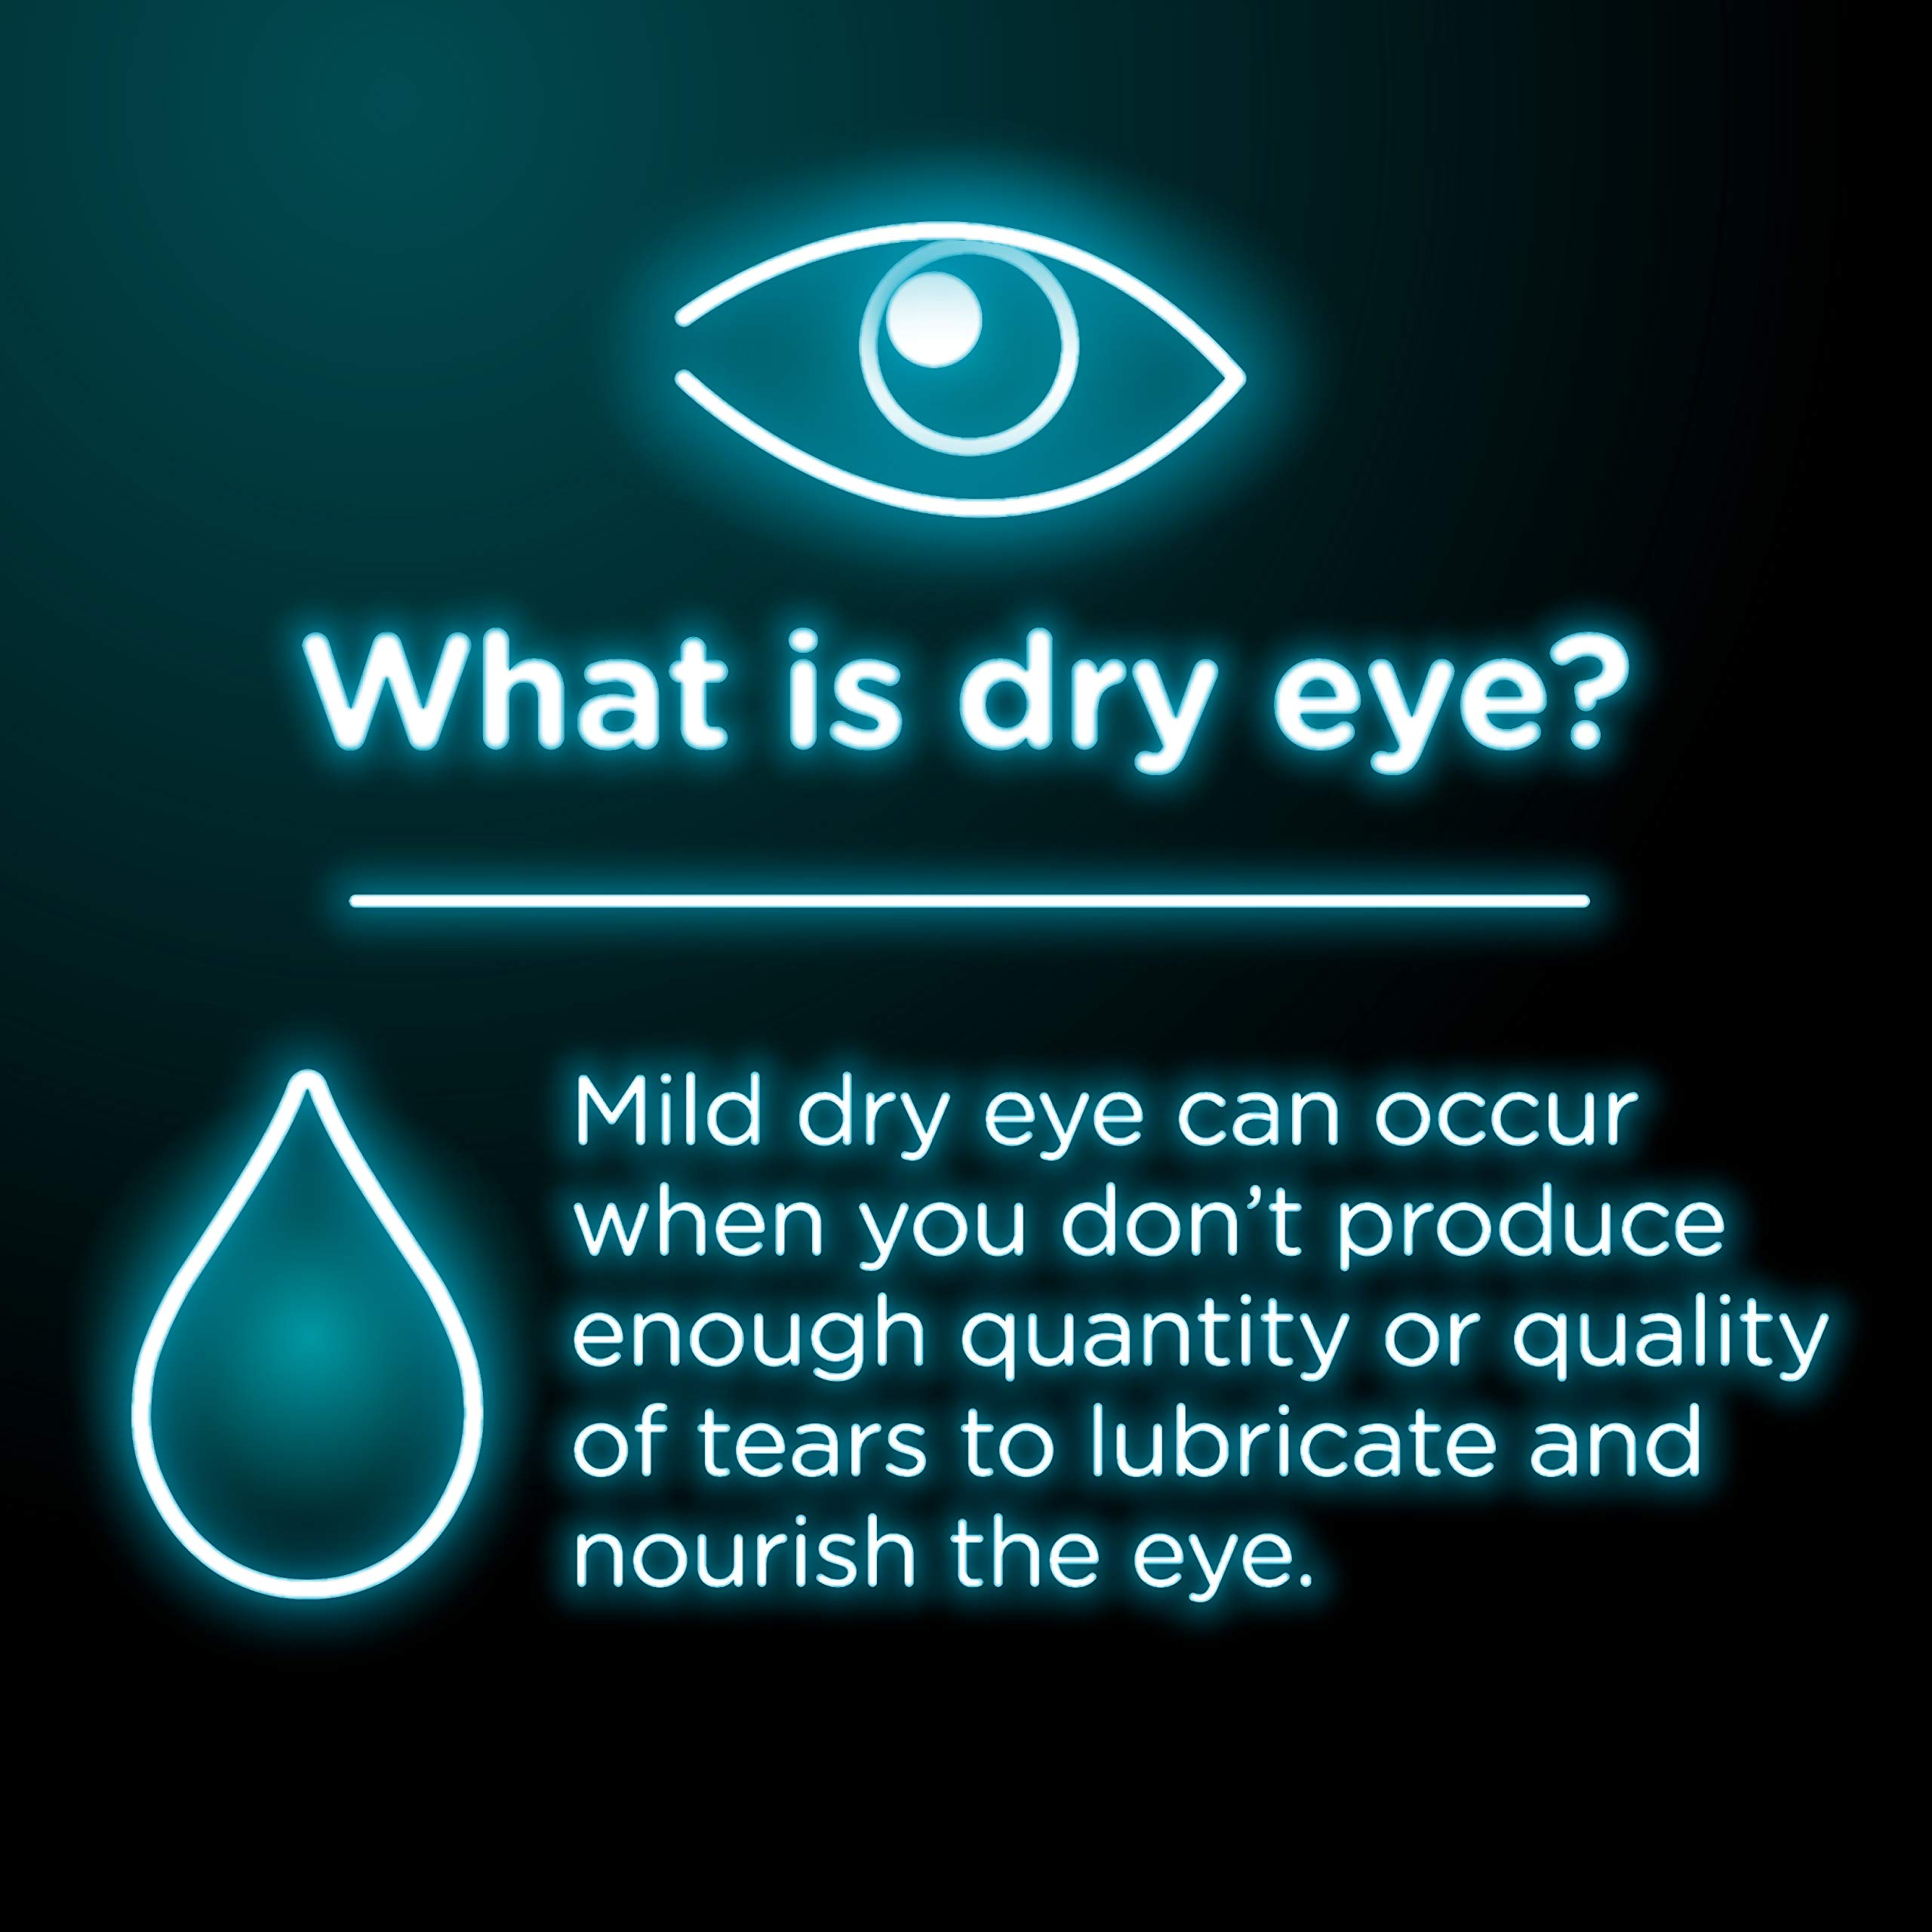 Dry Eye Relief Lubricant Eye Drops to Moisturize and Soothe Irritated, Gritty and Dry Eyes